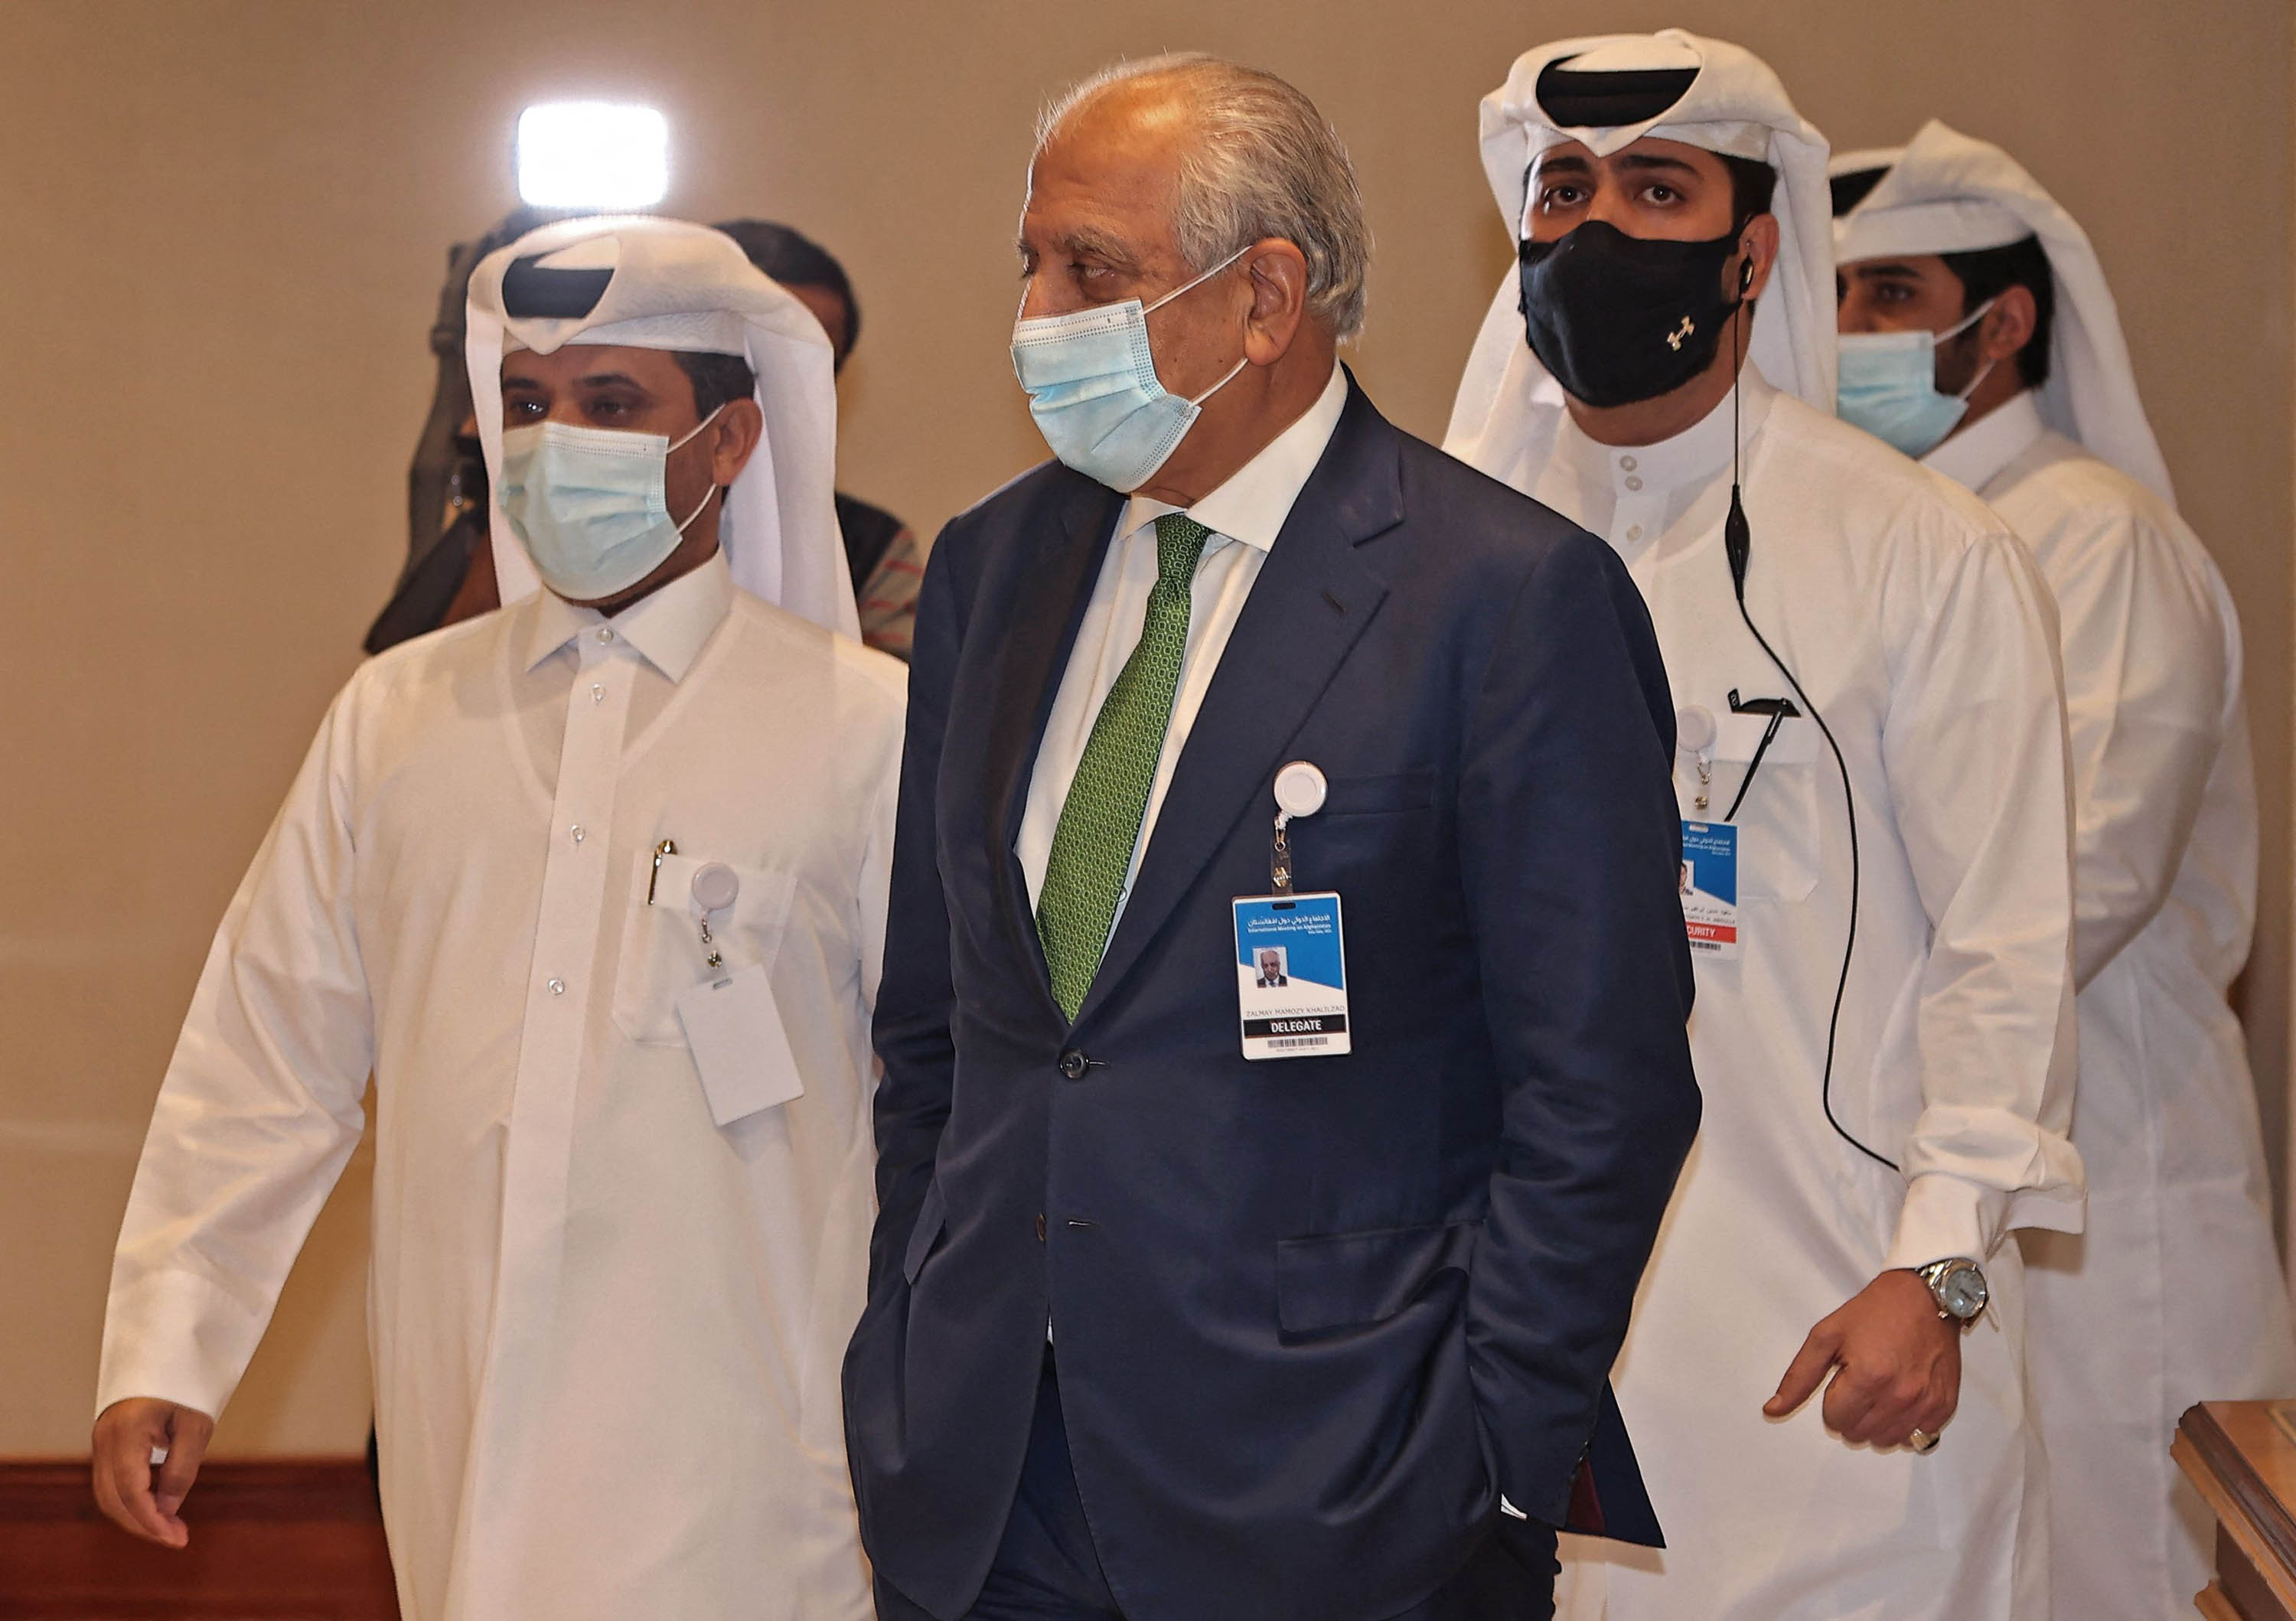 US special envoy for Afghanistan Zalmay Khalilzad, center, is seen at a hotel in Doha, Qatar, during an international meeting on the escalating conflict in Afghanistan, on August 12.